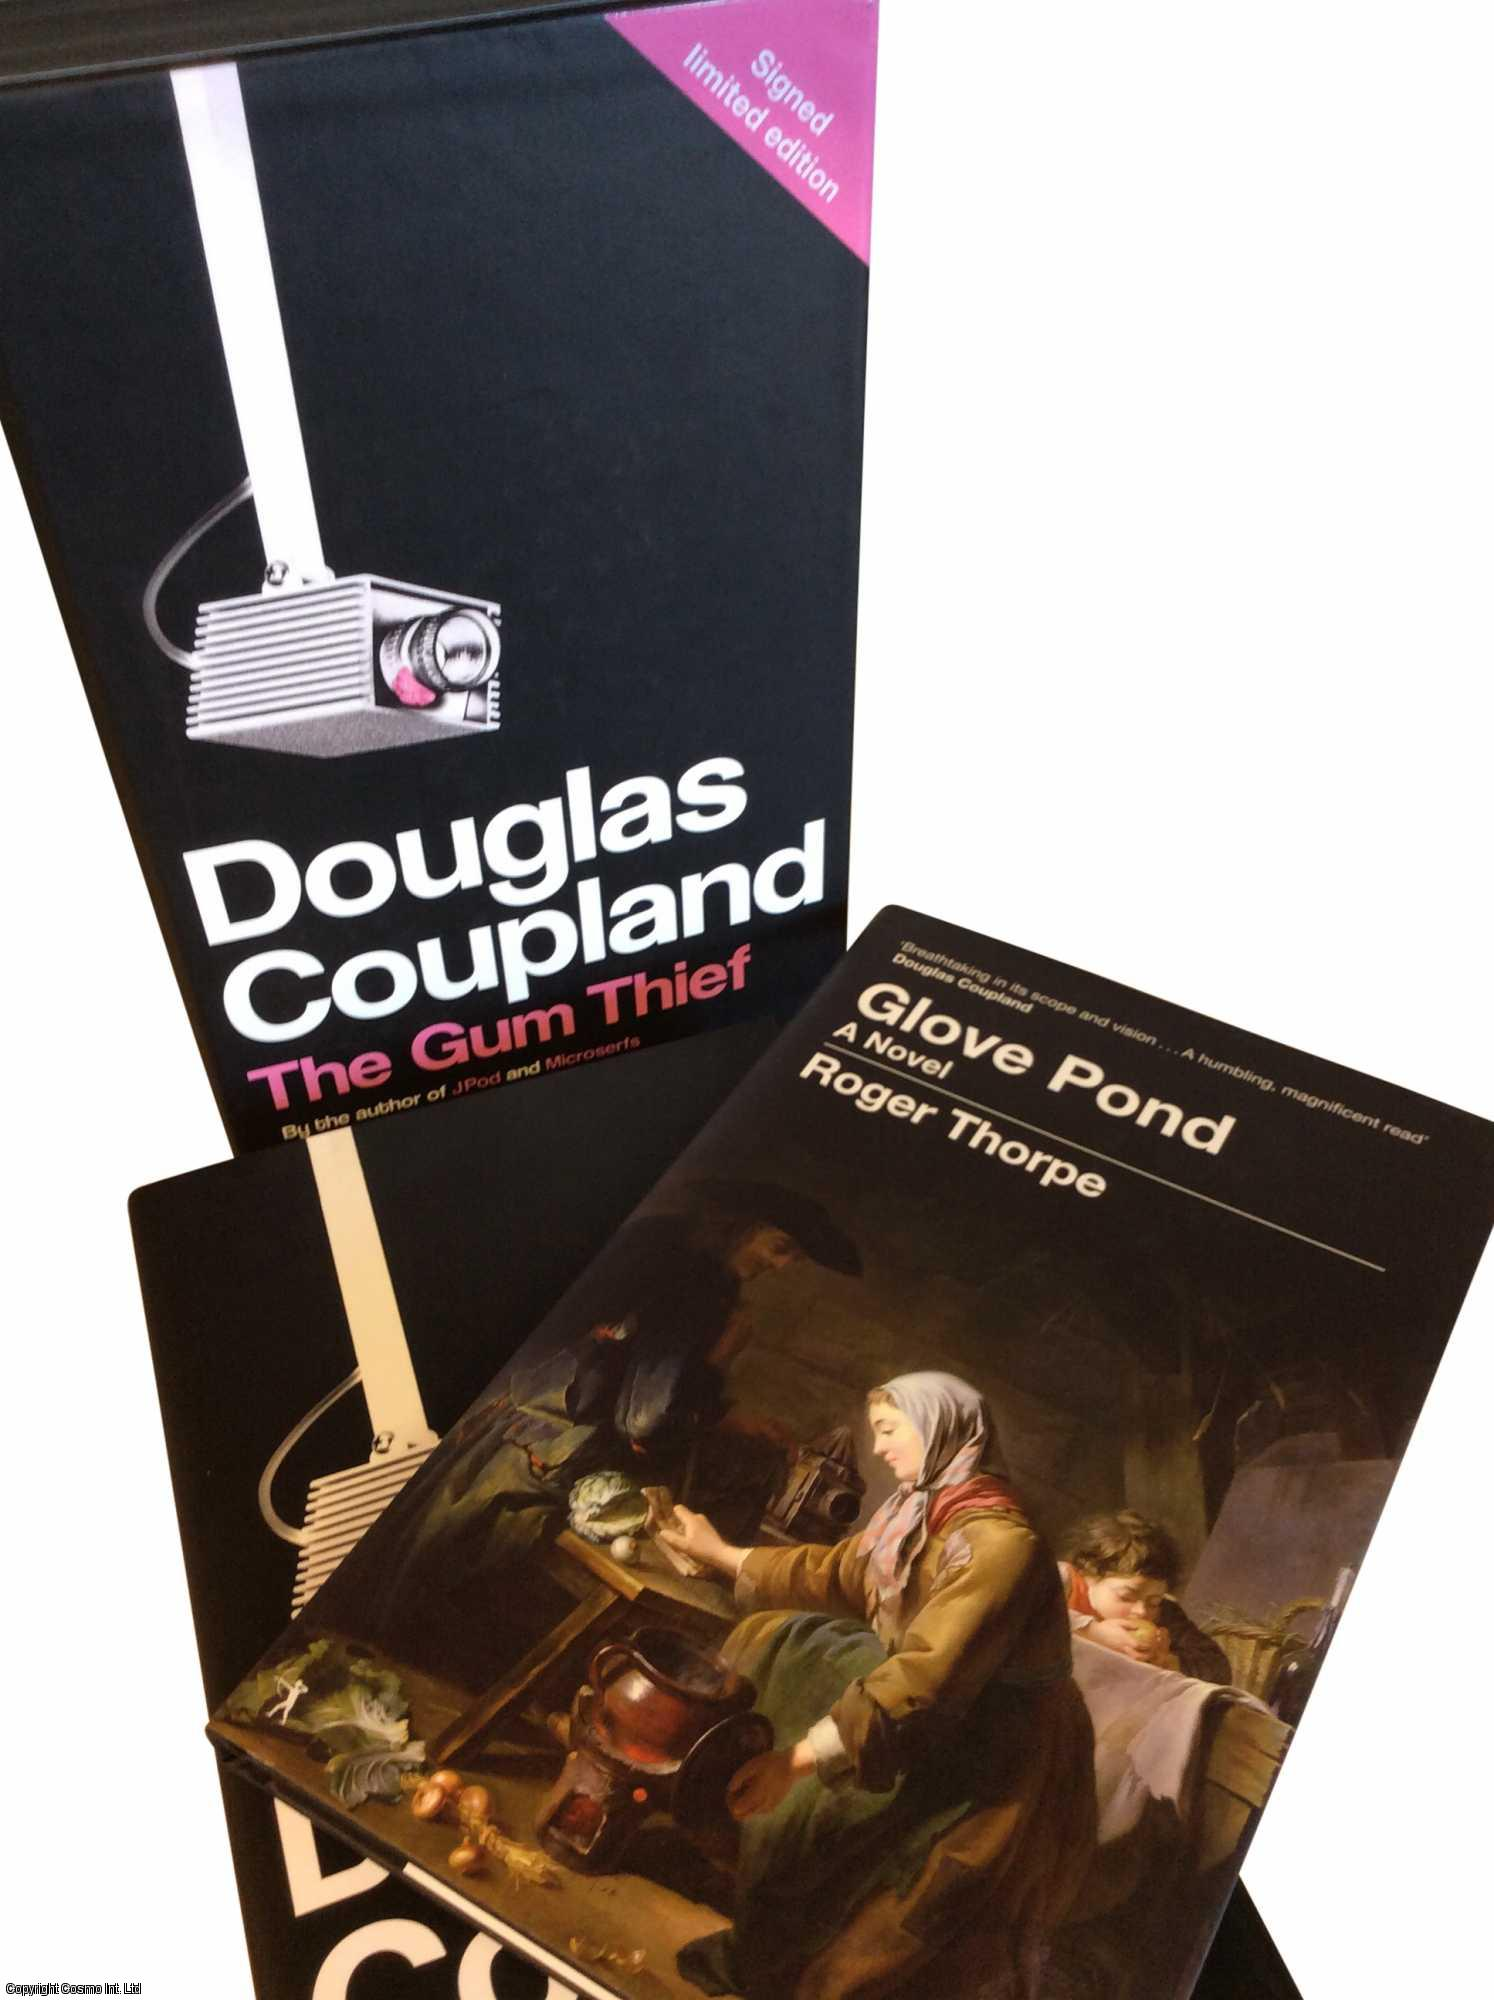 The Gum Thief and Glove Pond. In a slipcase. LIMITED EDITION HARDBACKS., Coupland, Douglas